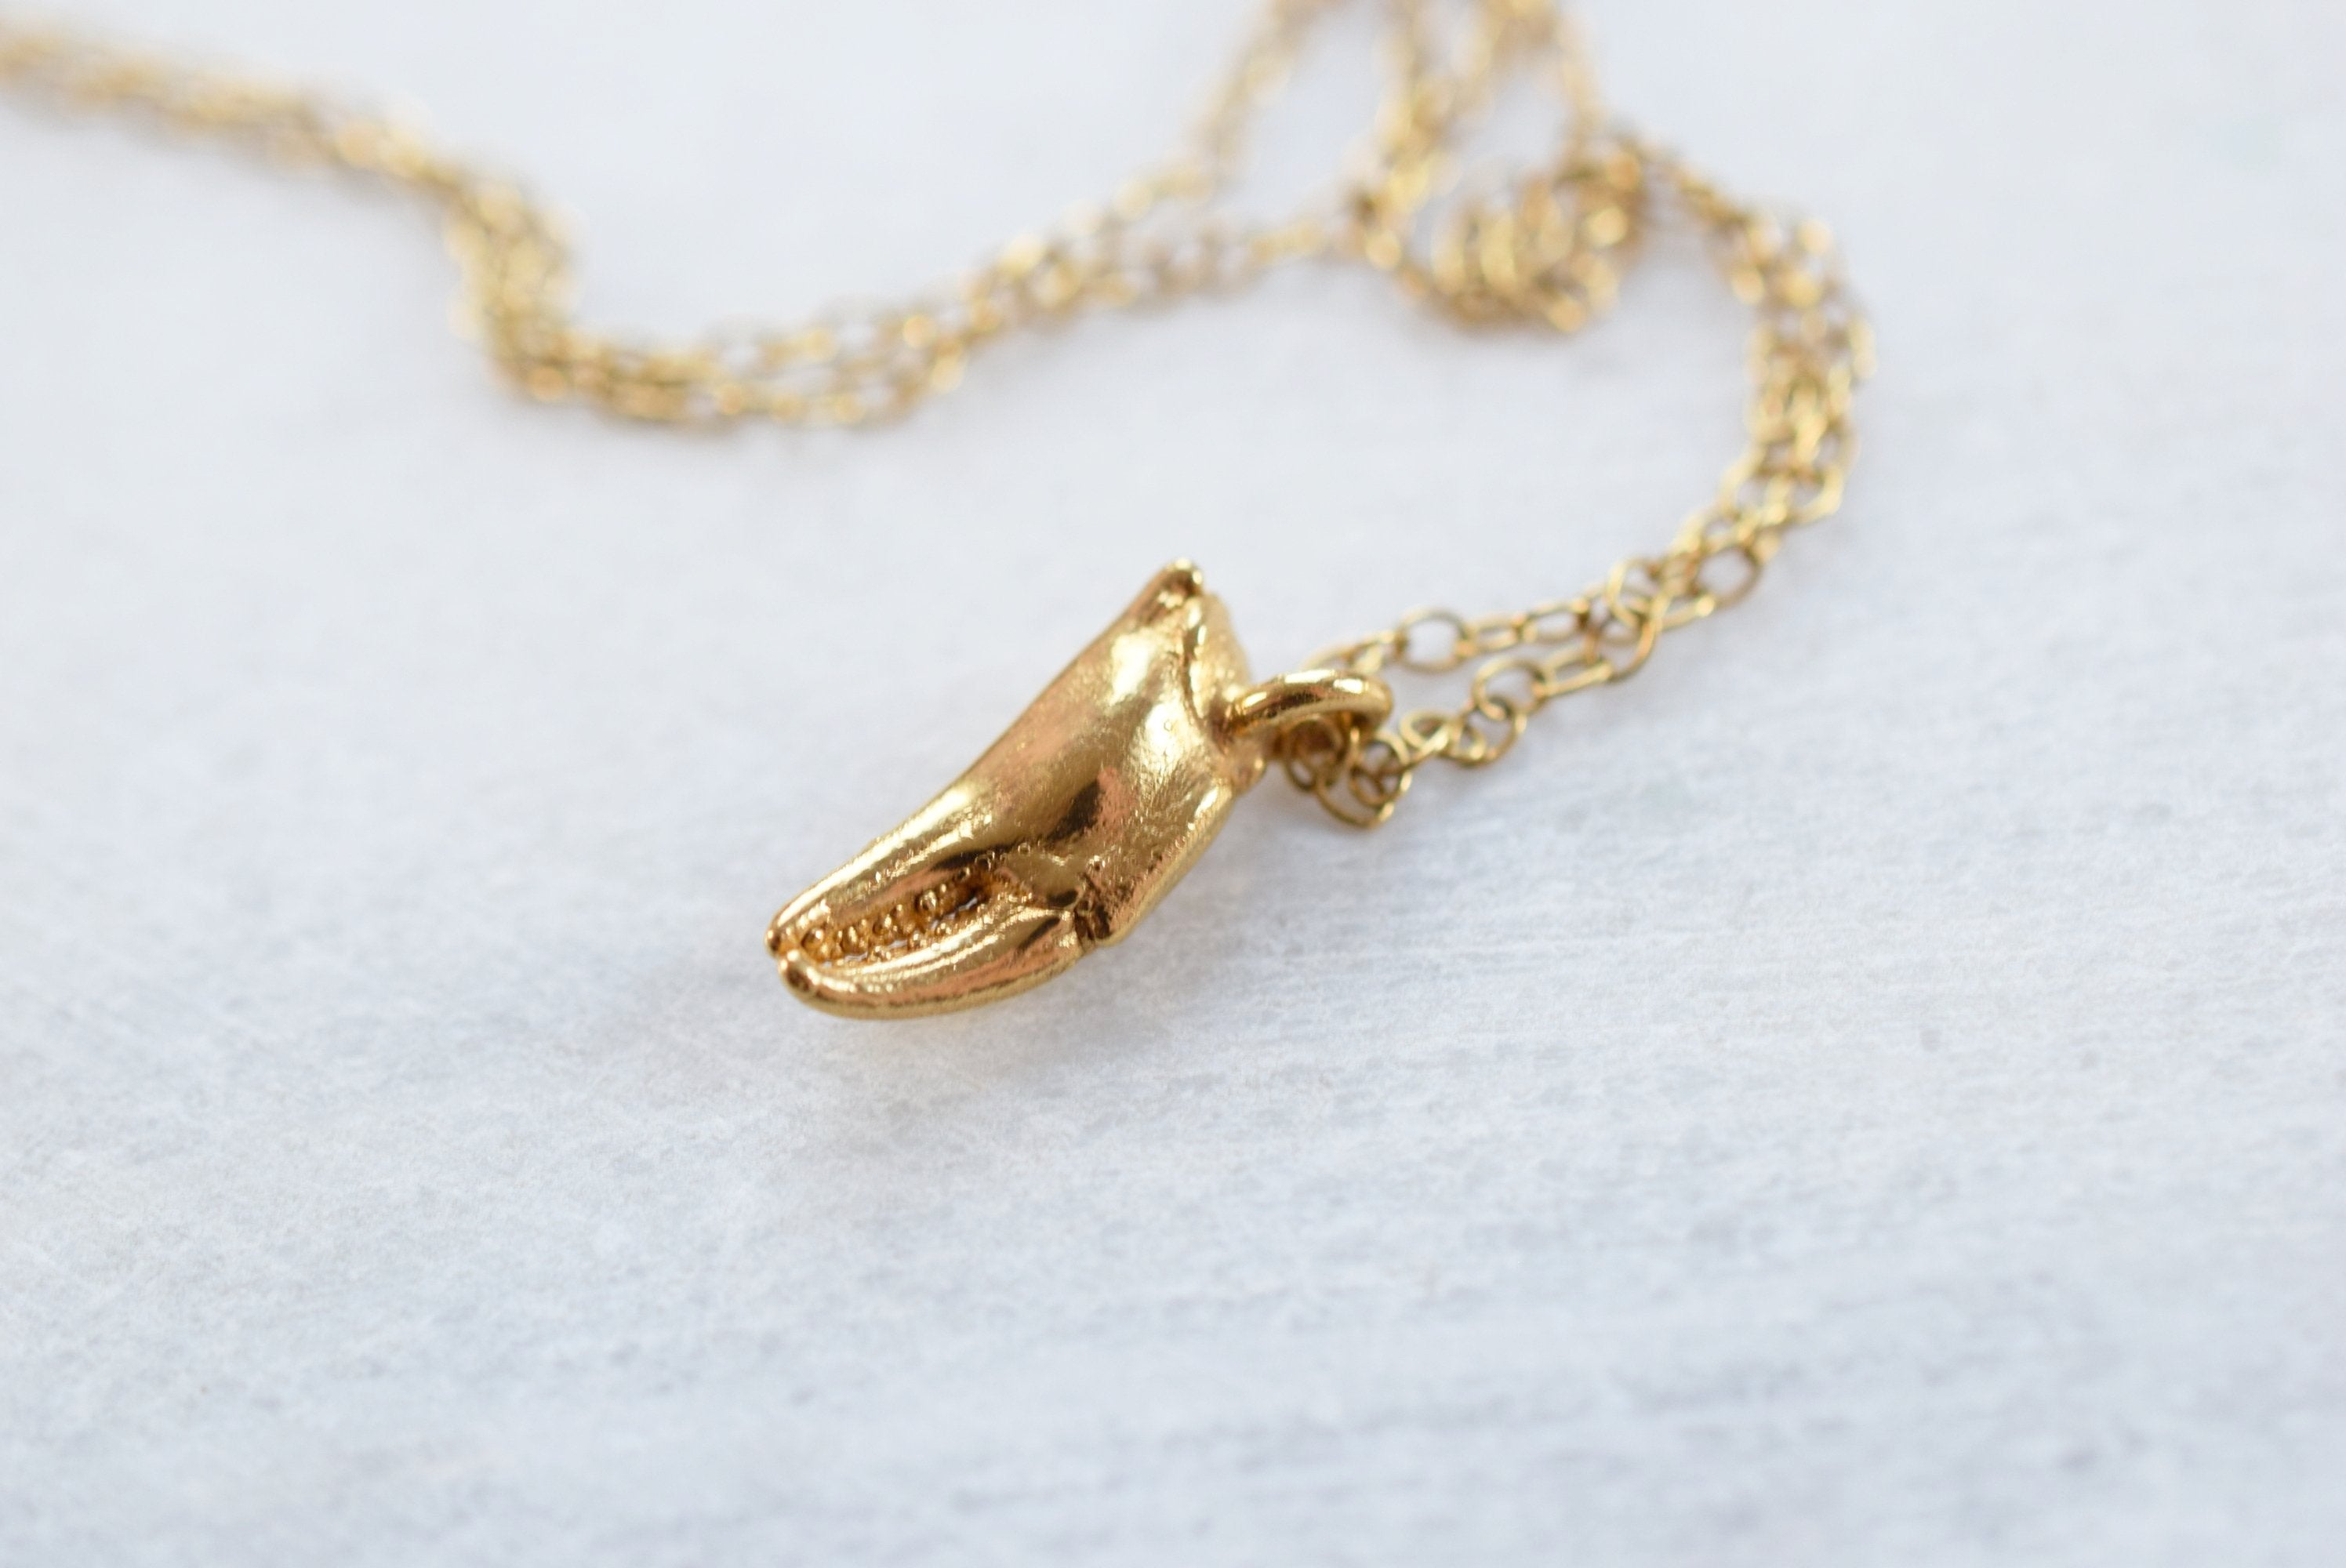 REAL TINY CRAB CLAW NECKLACE IN FINE GOLD